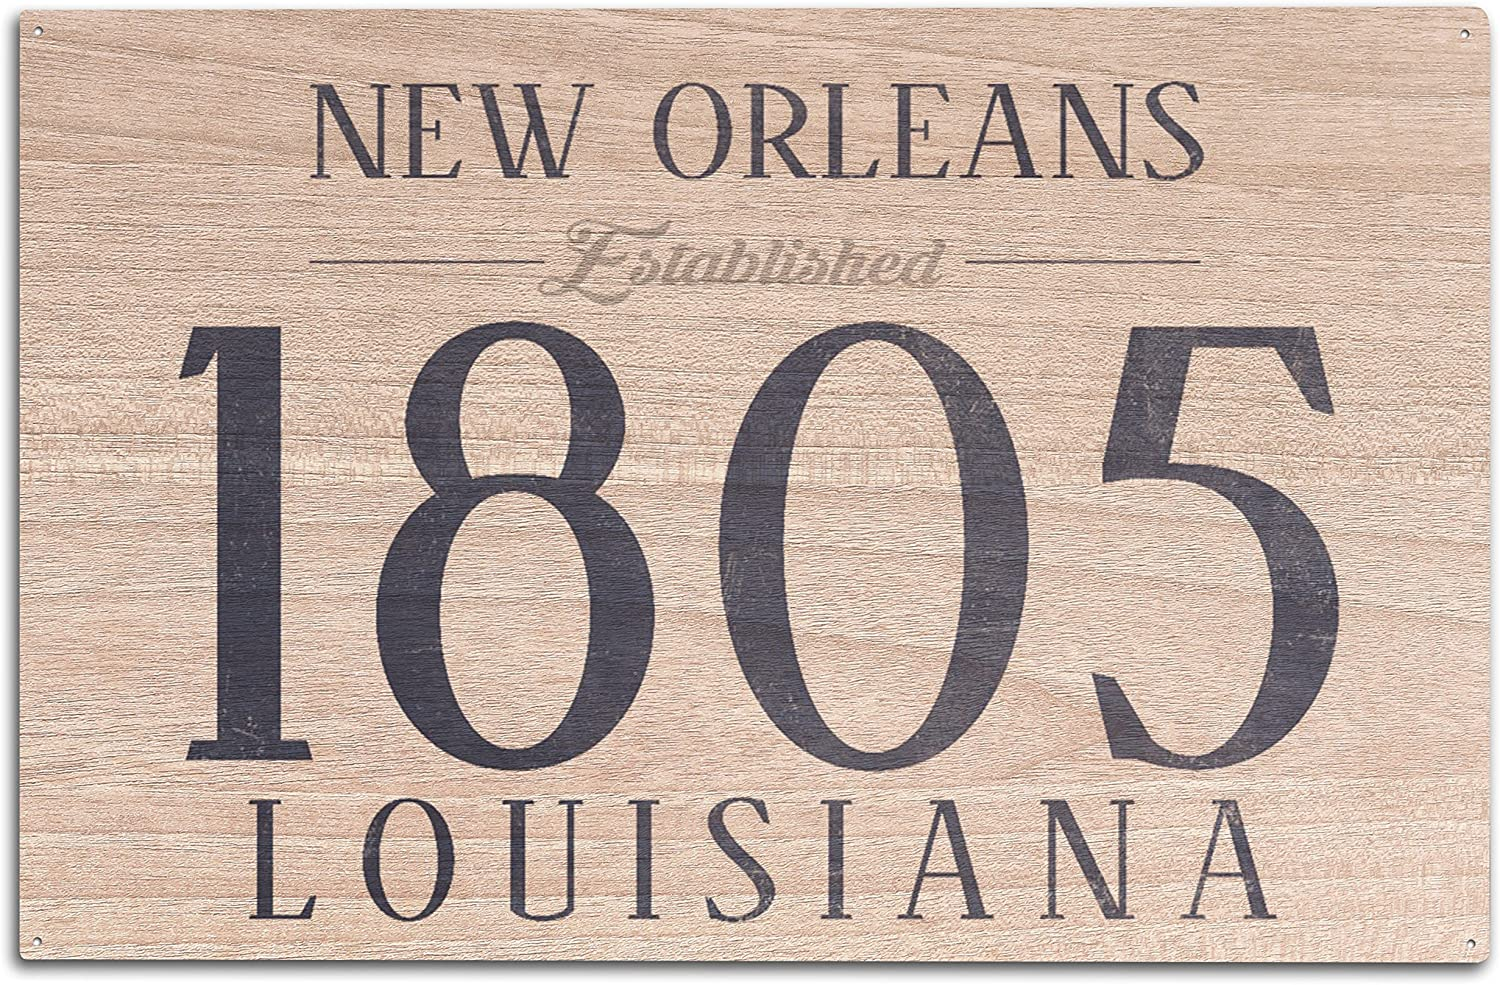 Louisiana Blue 36x54 Giclee Gallery Print, Wall Decor Travel Poster Established Date New Orleans